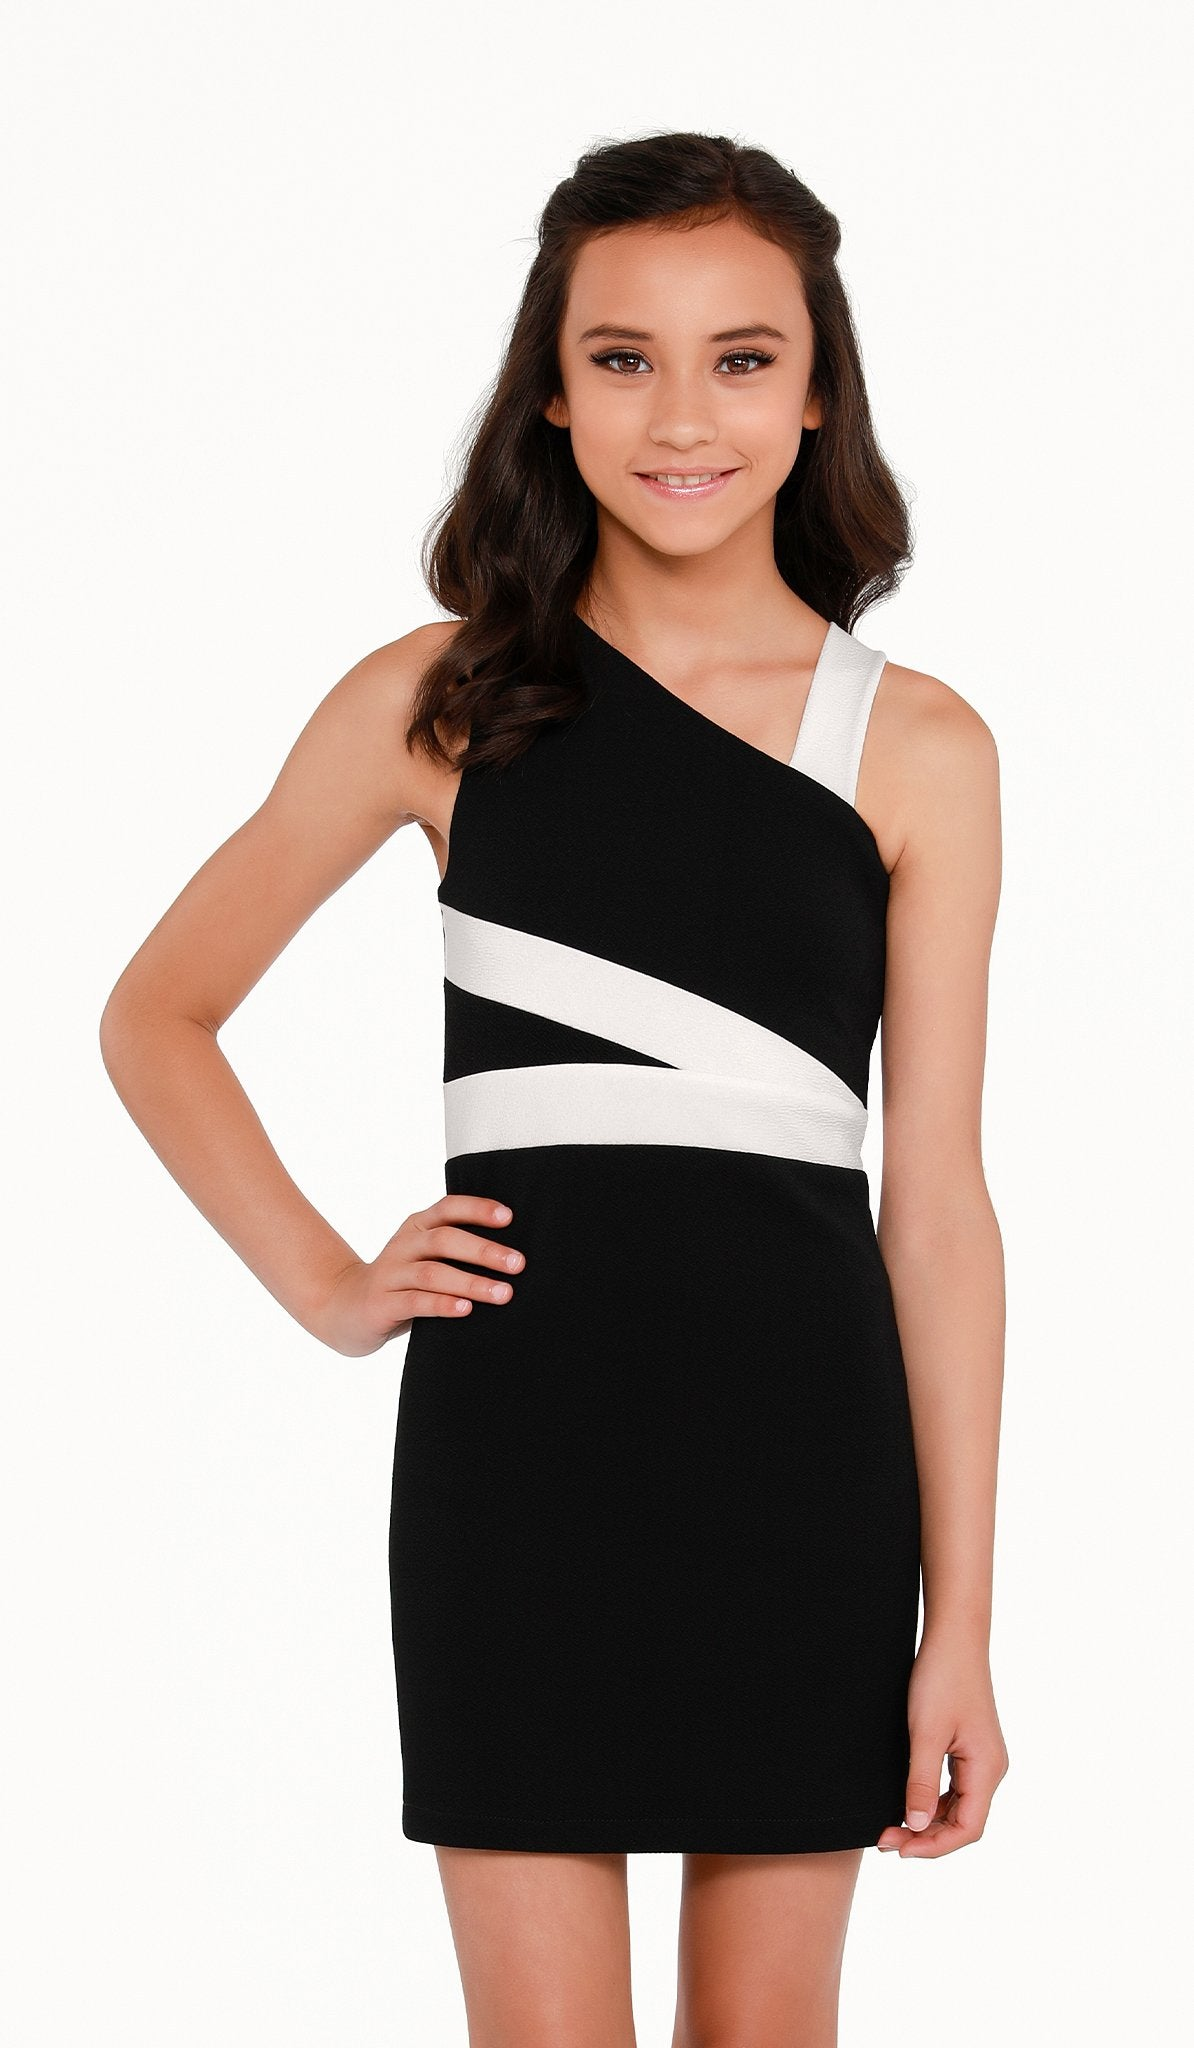 The Sally Miller Melissa Dress | Black stretch textured knit bodycon dress with ivory trim detail | | Event & Party Dresses for Tween Girls & Juniors | Weddings Dresses, Bat Mitzvah Dresses, Sweet Sixteen Dresses, Graduation Dresses, Birthday Party Dresses, Bar Mitzvah Dresses, Cotillion Dresses